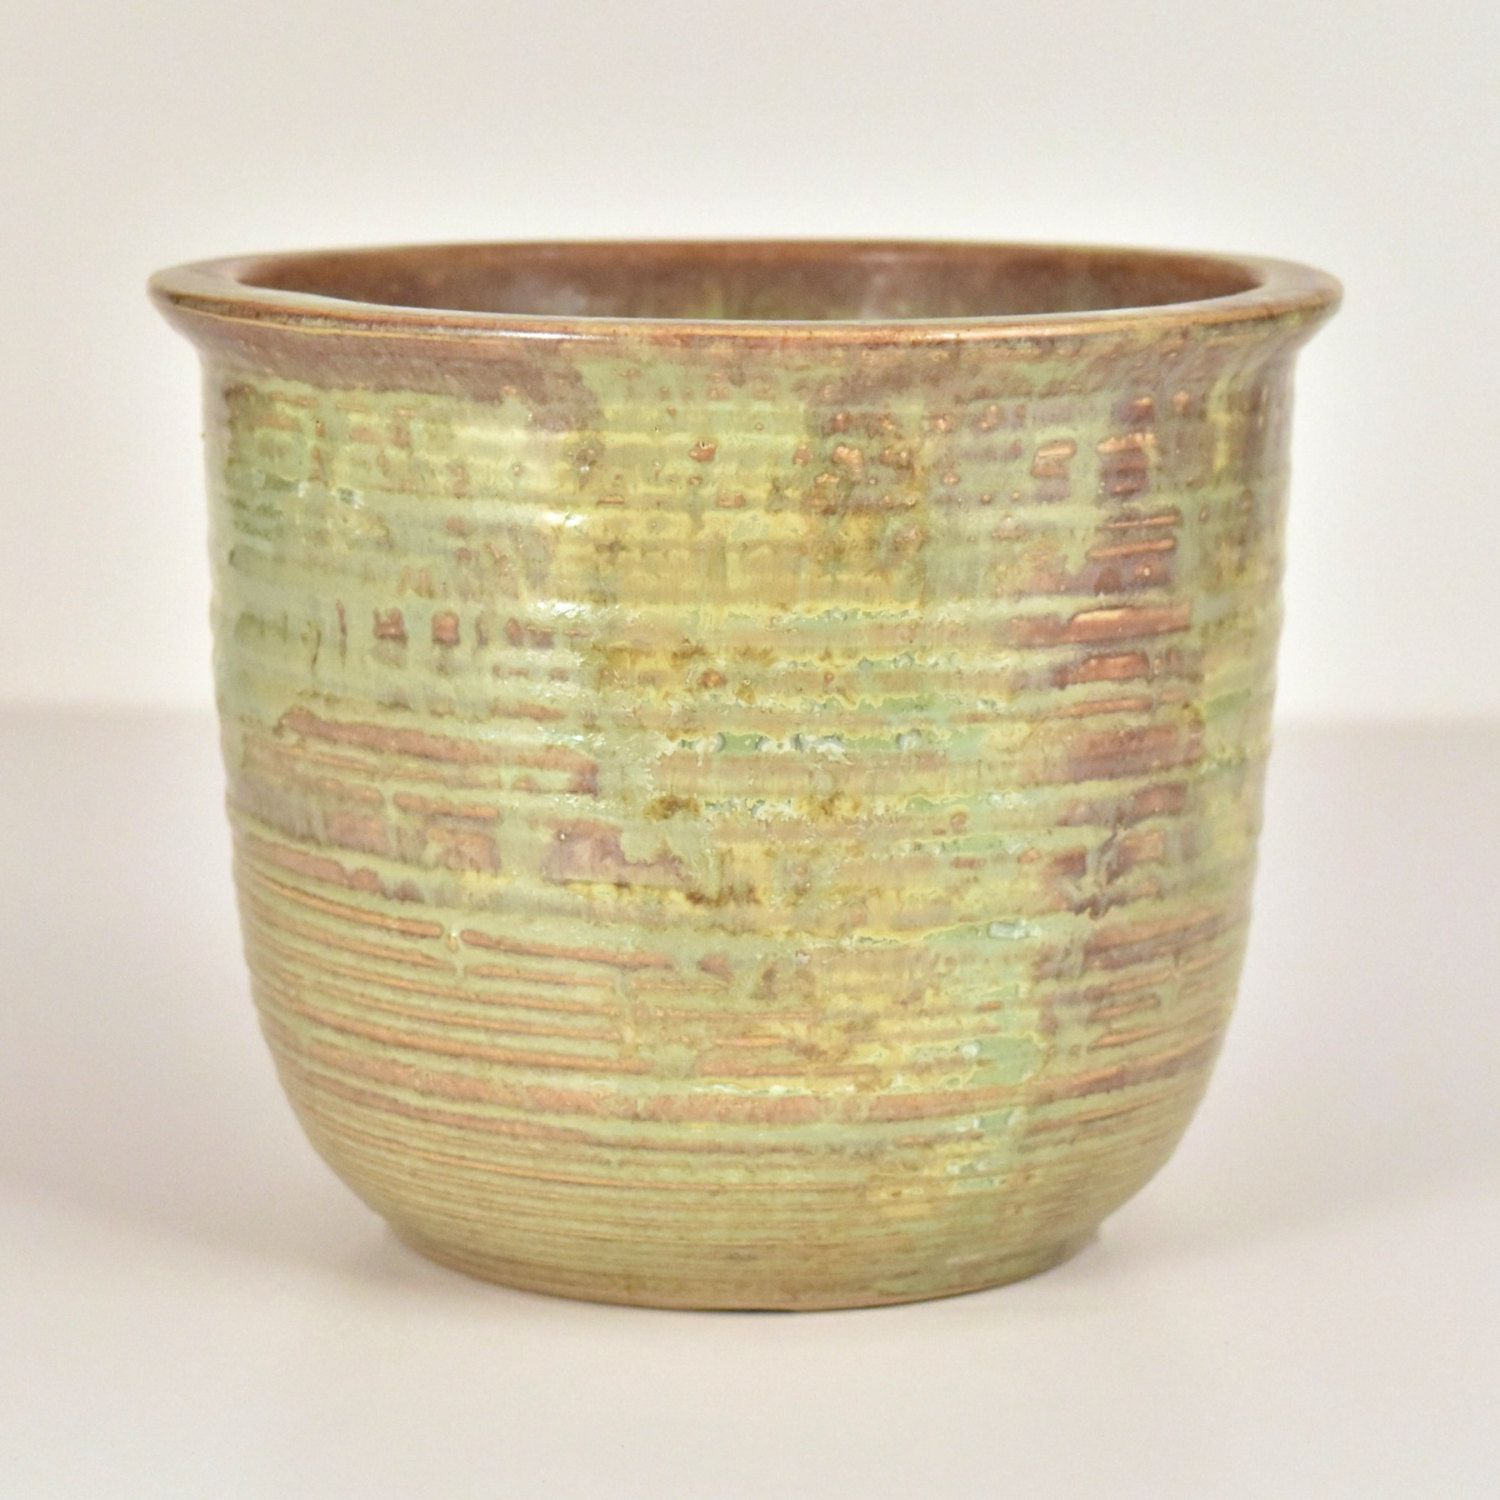 Western arts and crafts - Vintage Western Stoneware Monmouth Pottery Arts Crafts 7 935 Jardiniere Planter